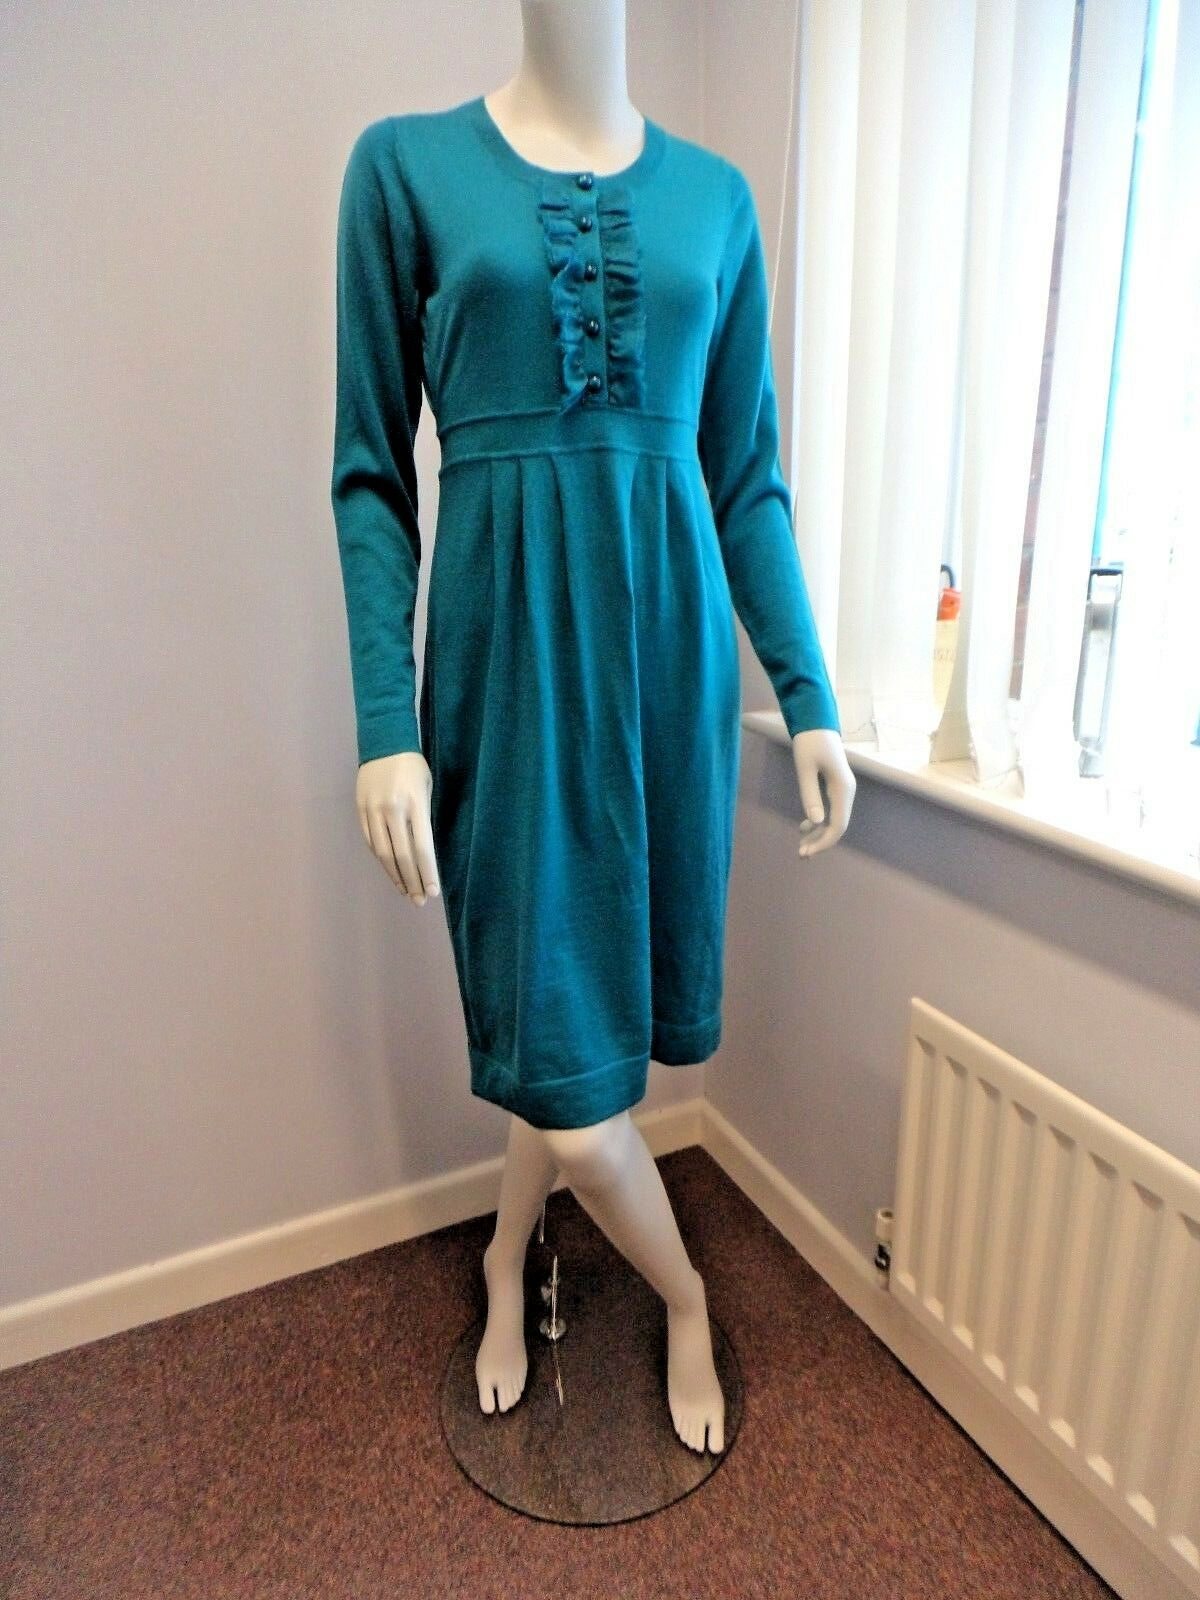 ex BODEN pure merino wool knitted TURQUOISE Ruffle Dress UK Größe 10 14 16 R L